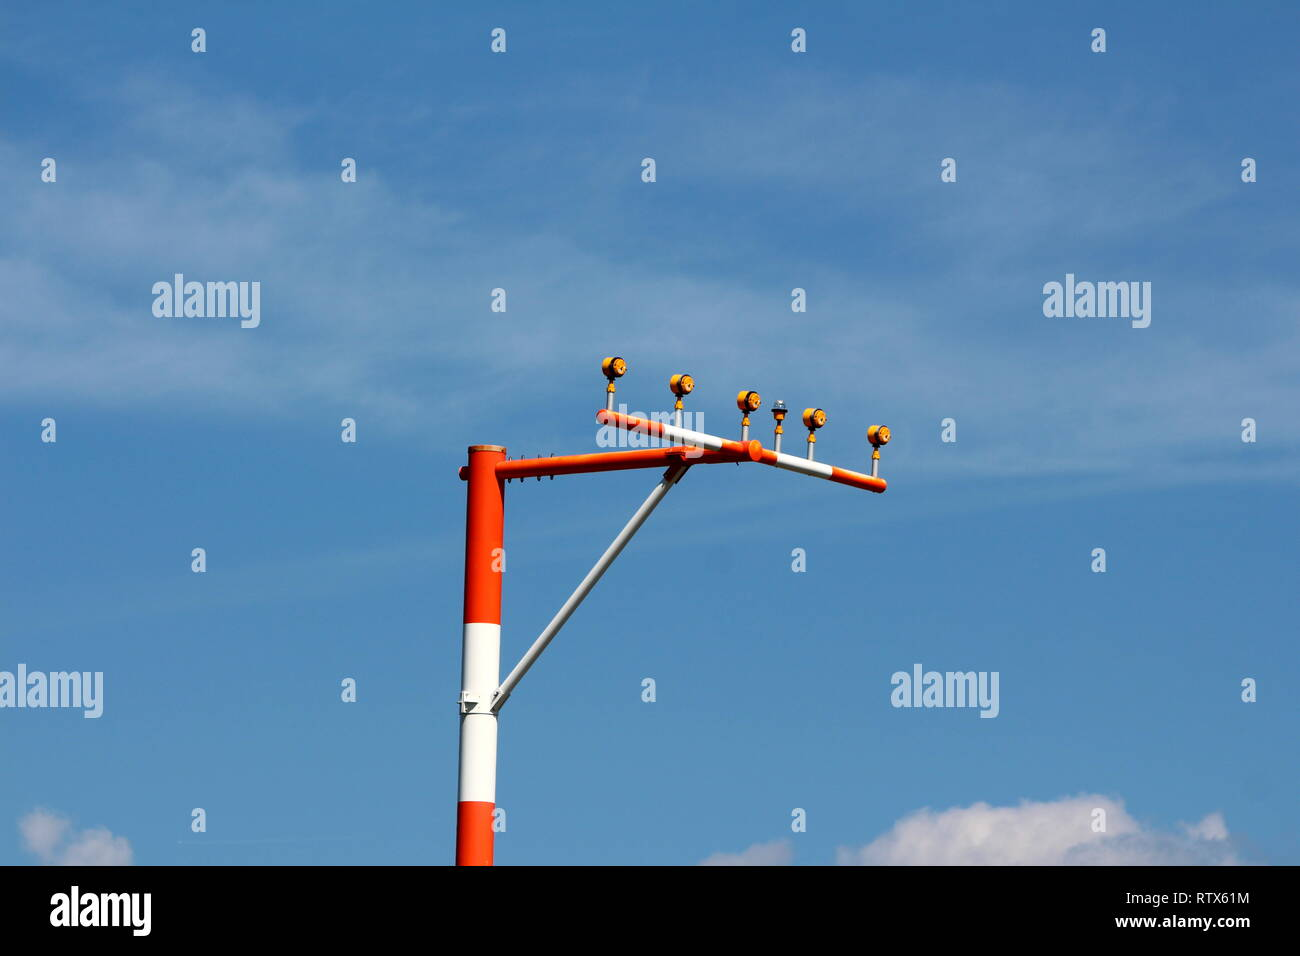 Single high metal red and white pole with multiple airport runway guiding lights on cloudy blue sky background - Stock Image